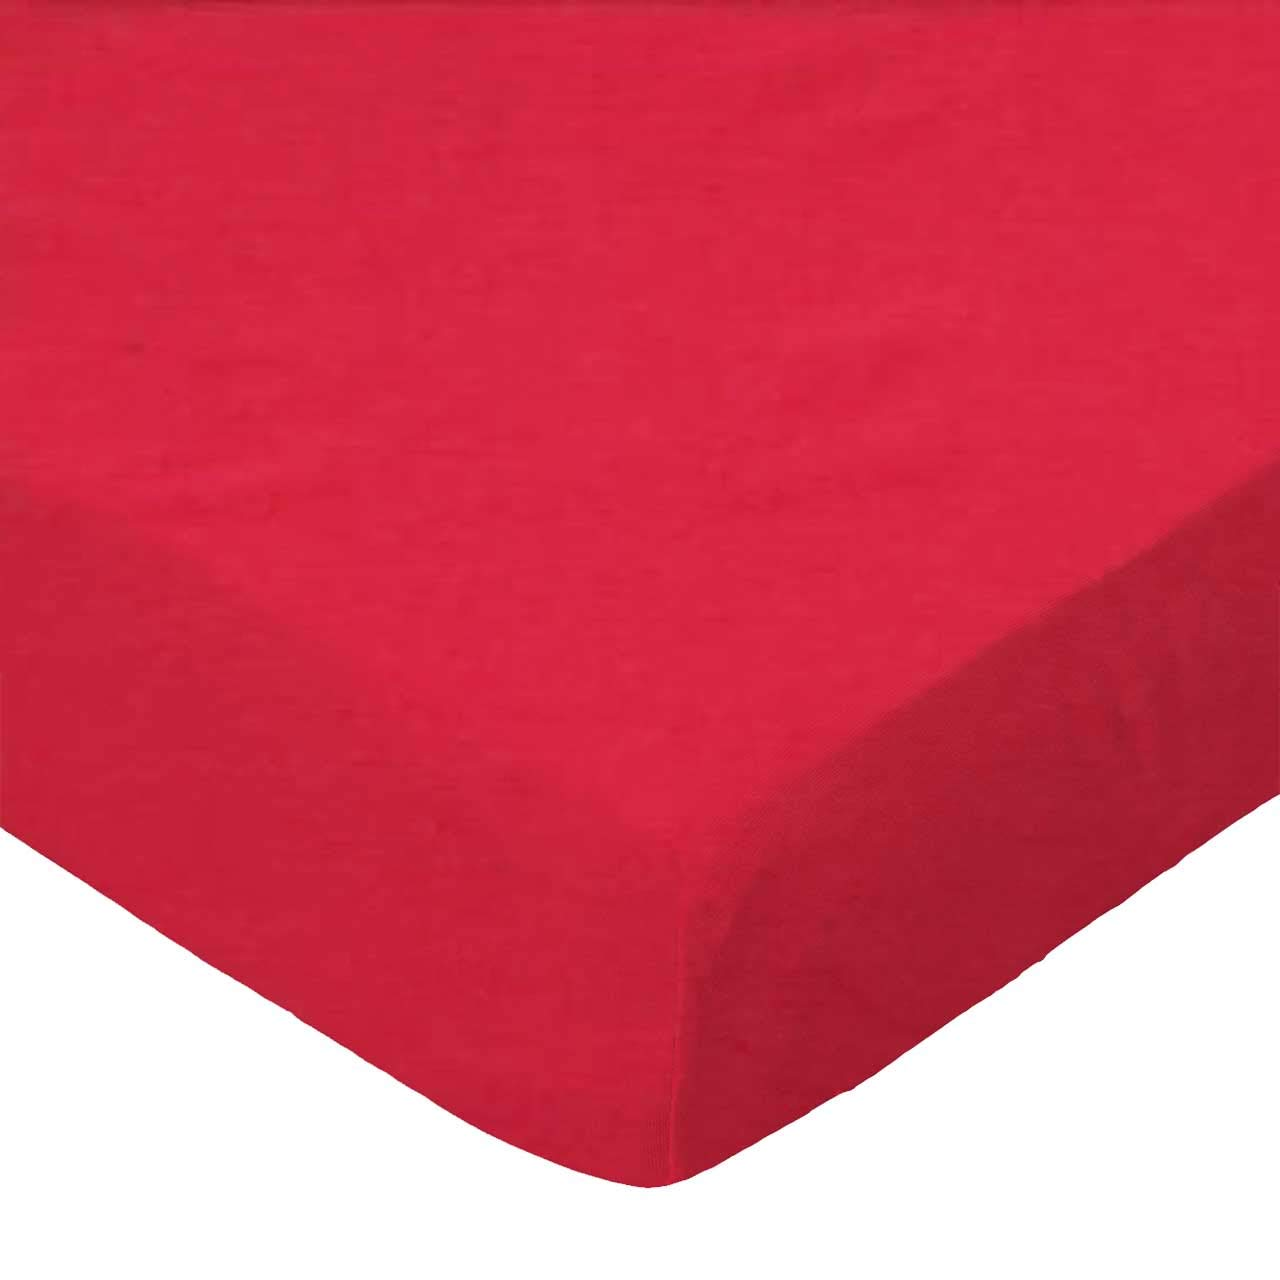 SheetWorld Fitted Bassinet Sheet - Solid Red Woven - Made In USA by sheetworld   B0029ZKGZS